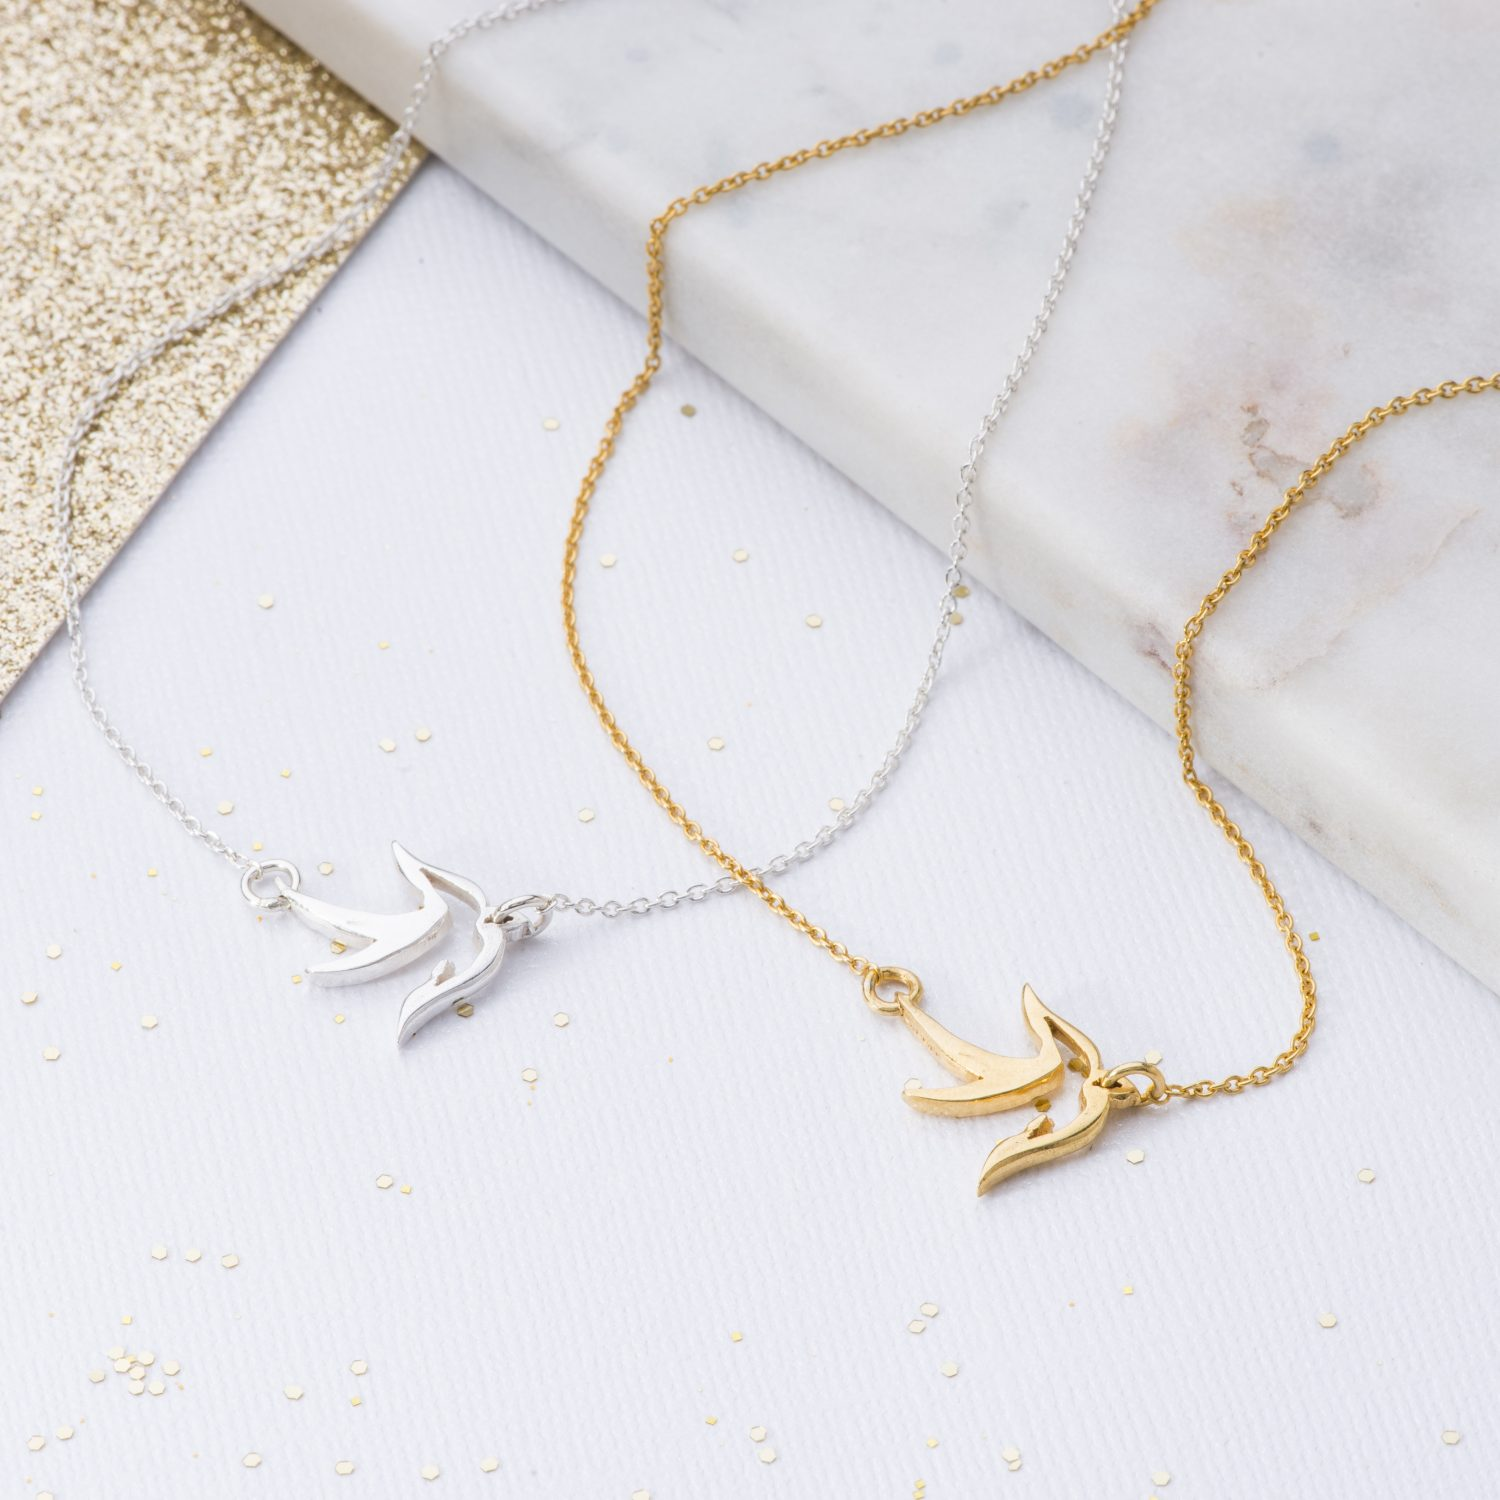 Silver and Gold little bird pendant